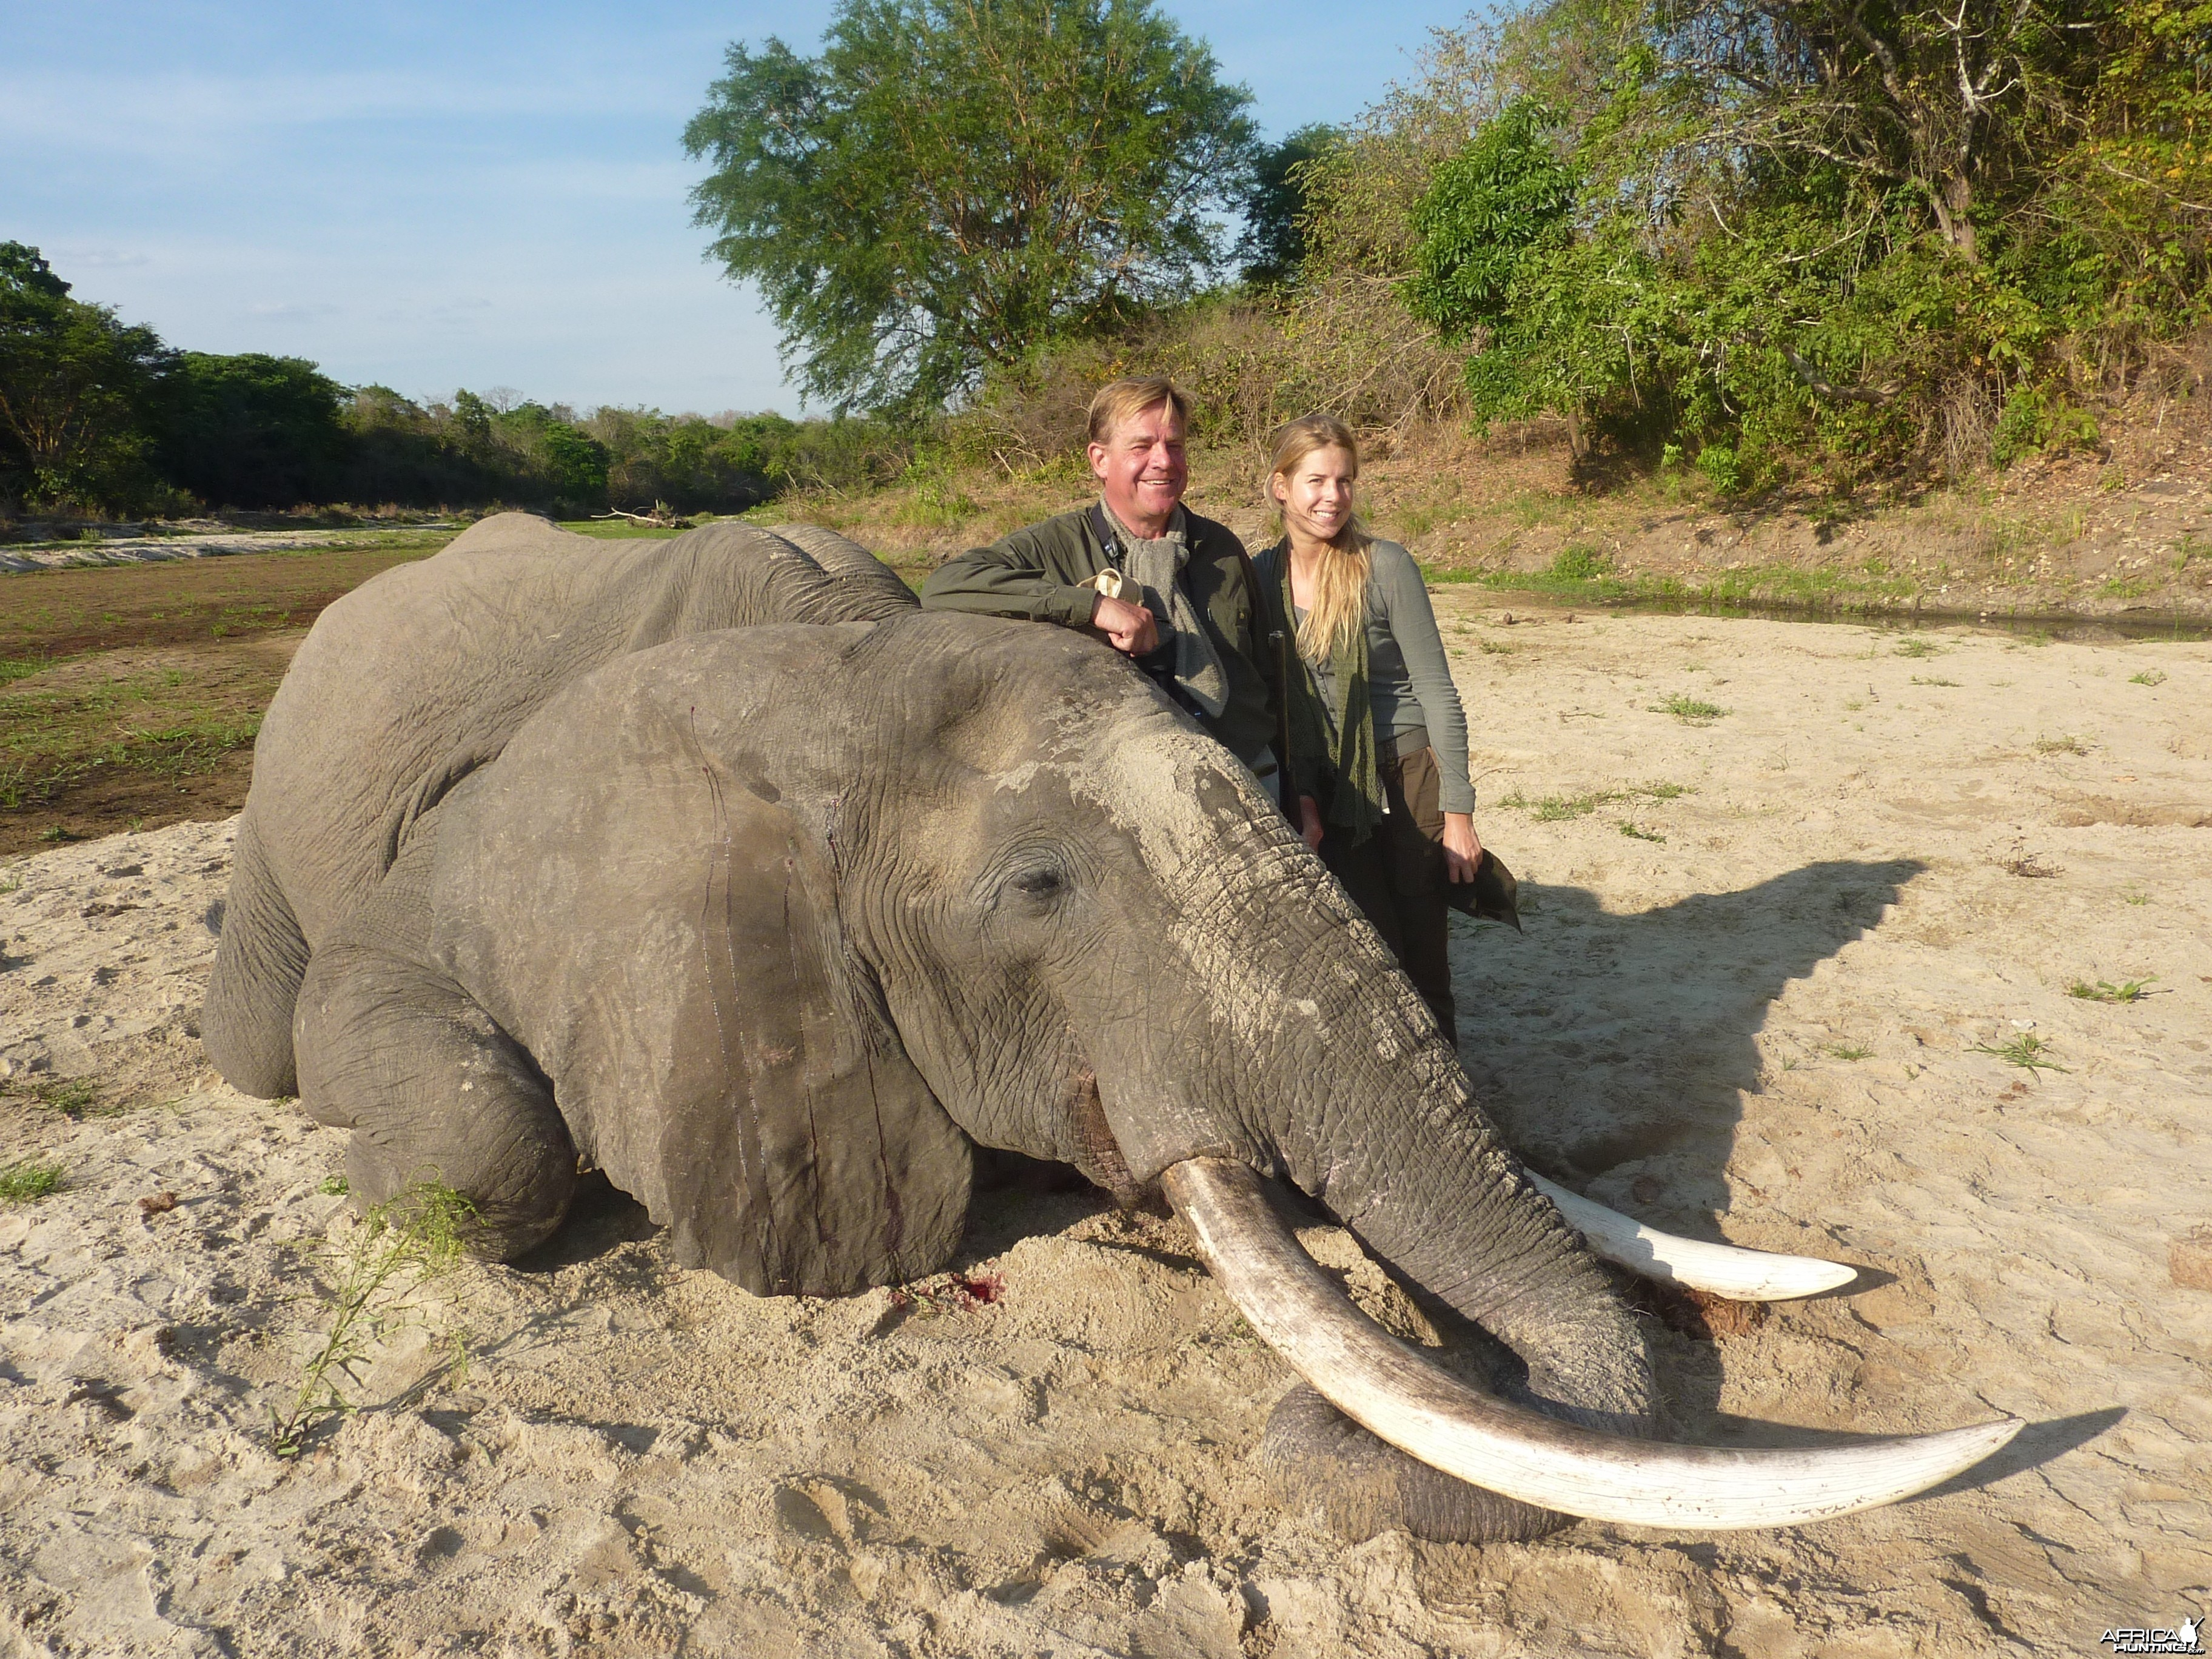 Big Elenpahnt hunted in Tanzania